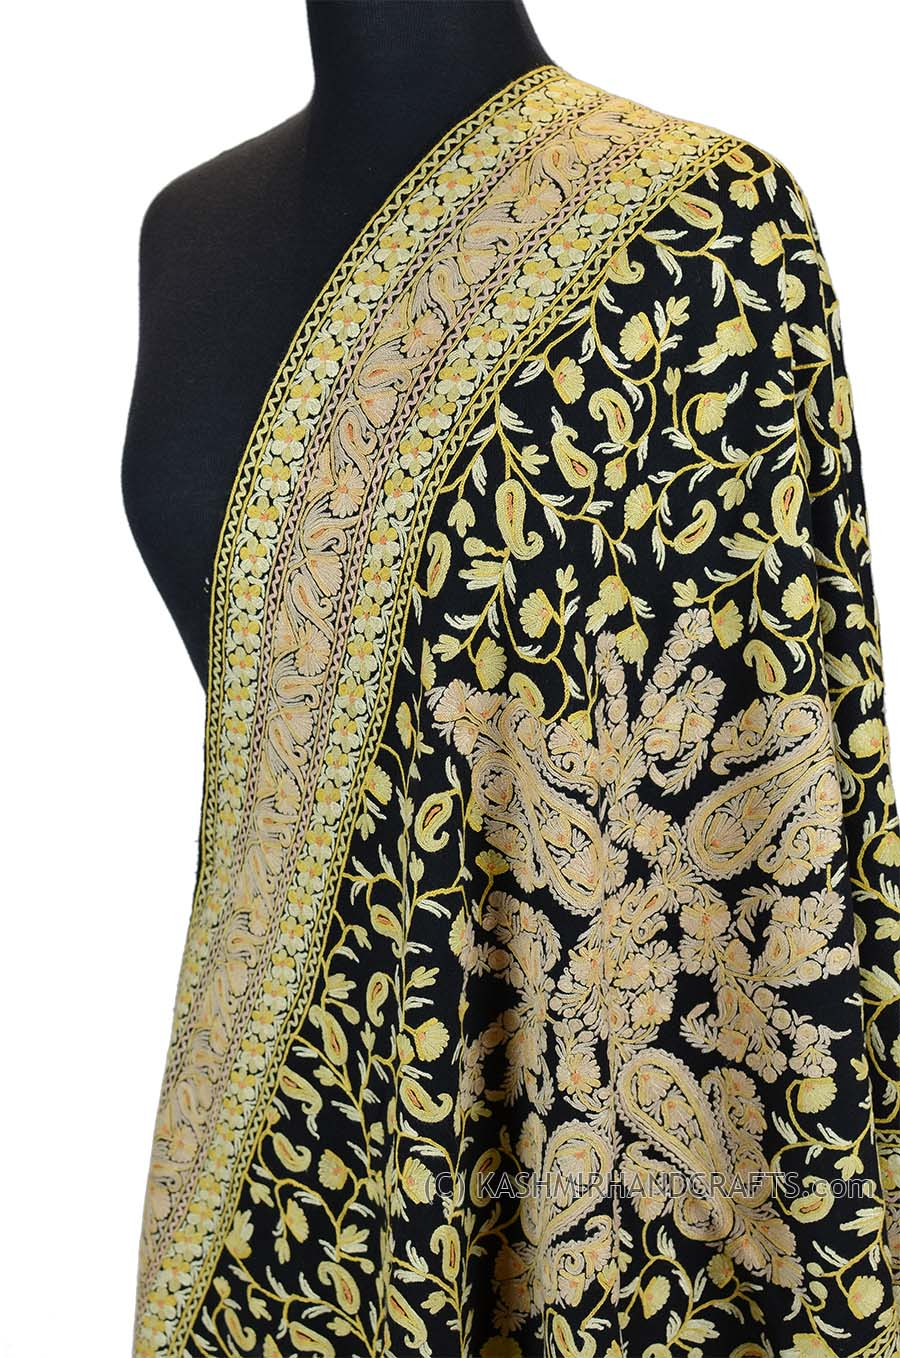 An example of a Kashmir paisley shawl